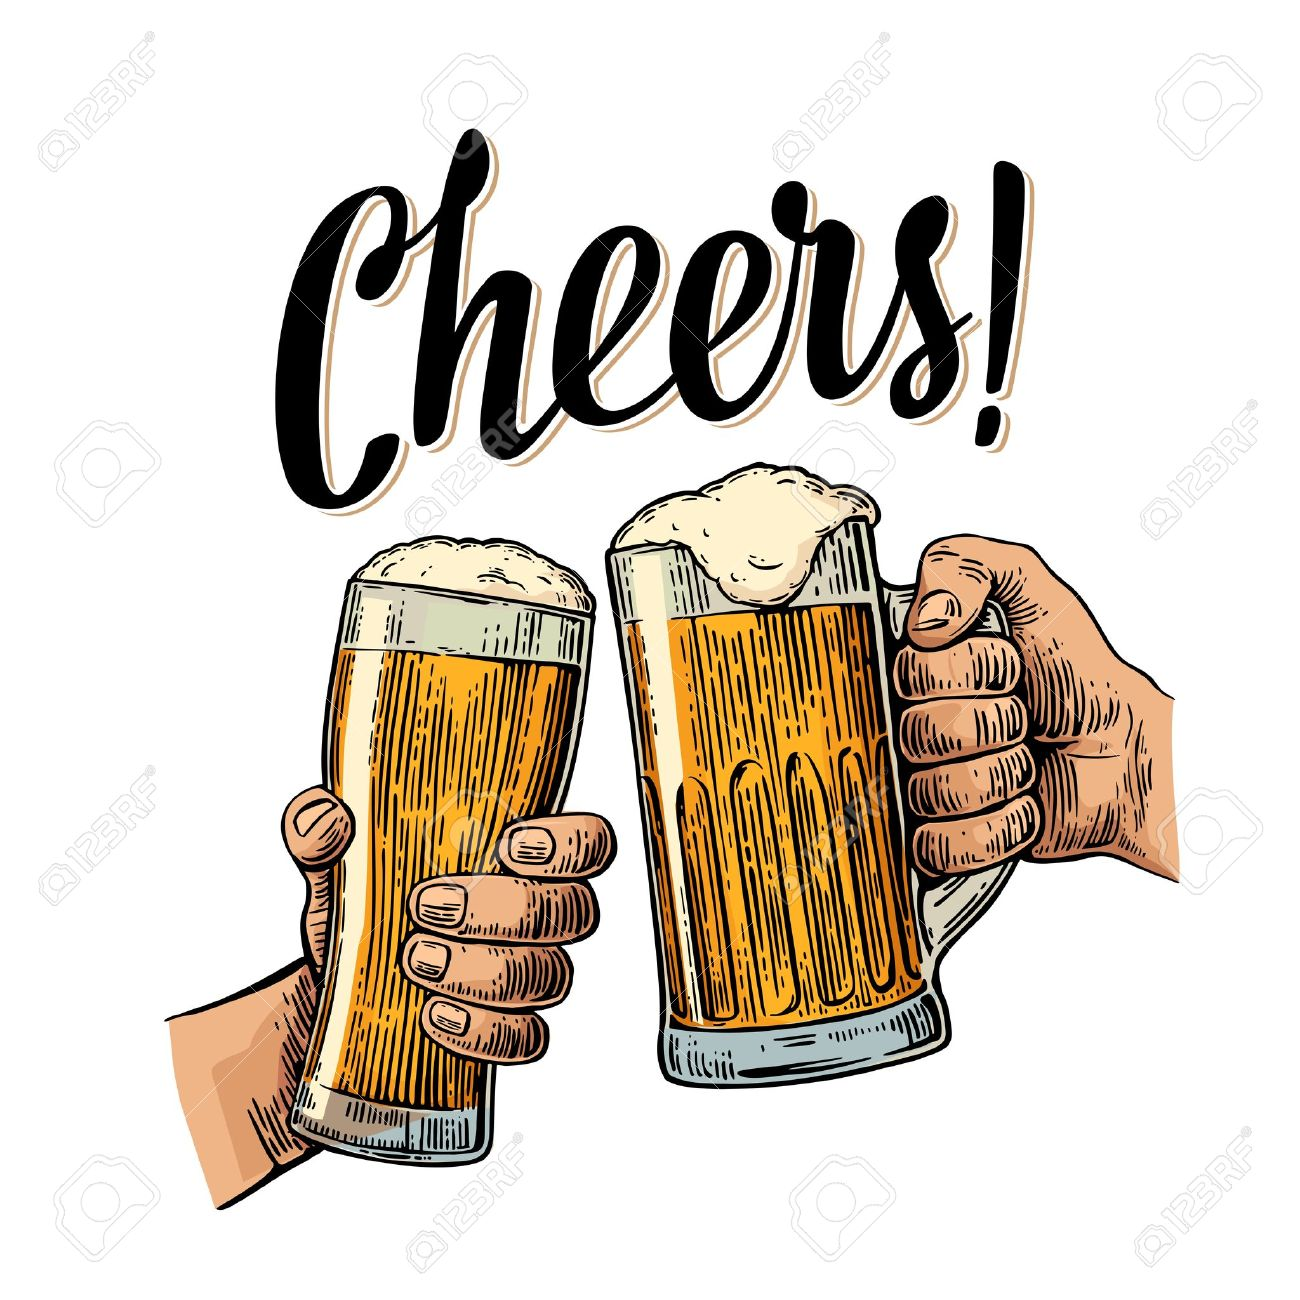 Beer cheers clipart 5 » Clipart Station.